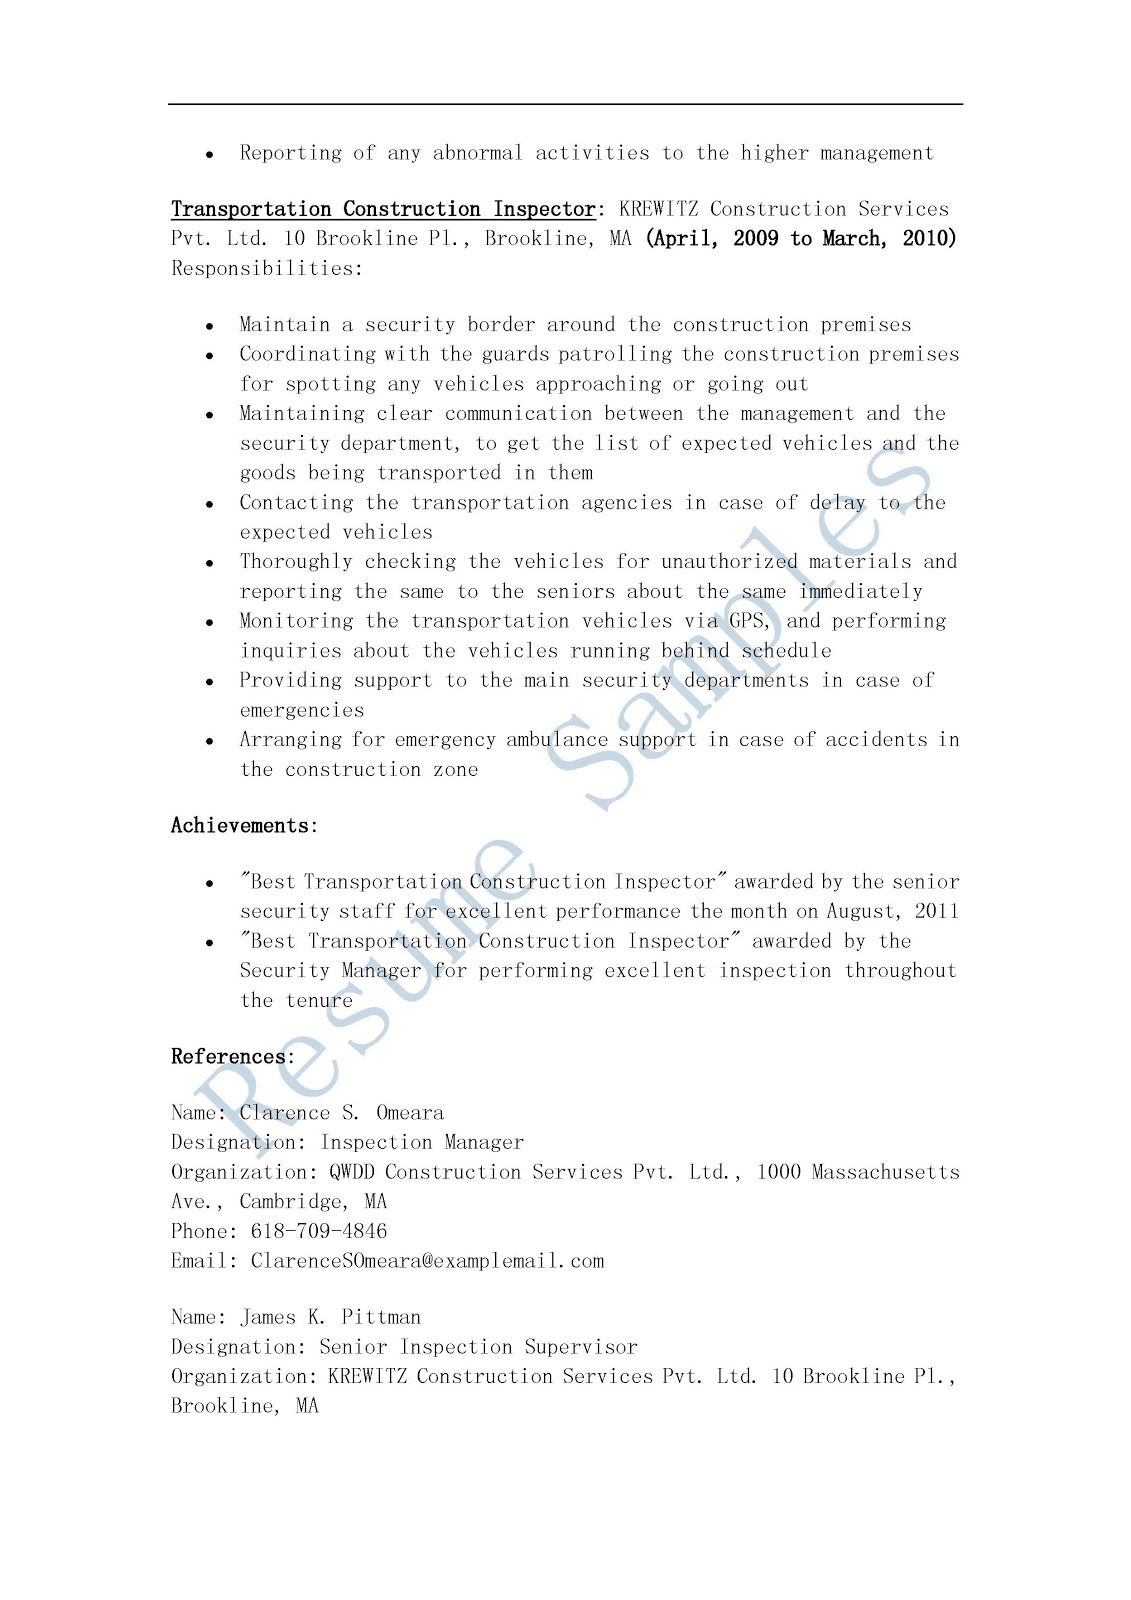 Construction Inspector Resume Samples